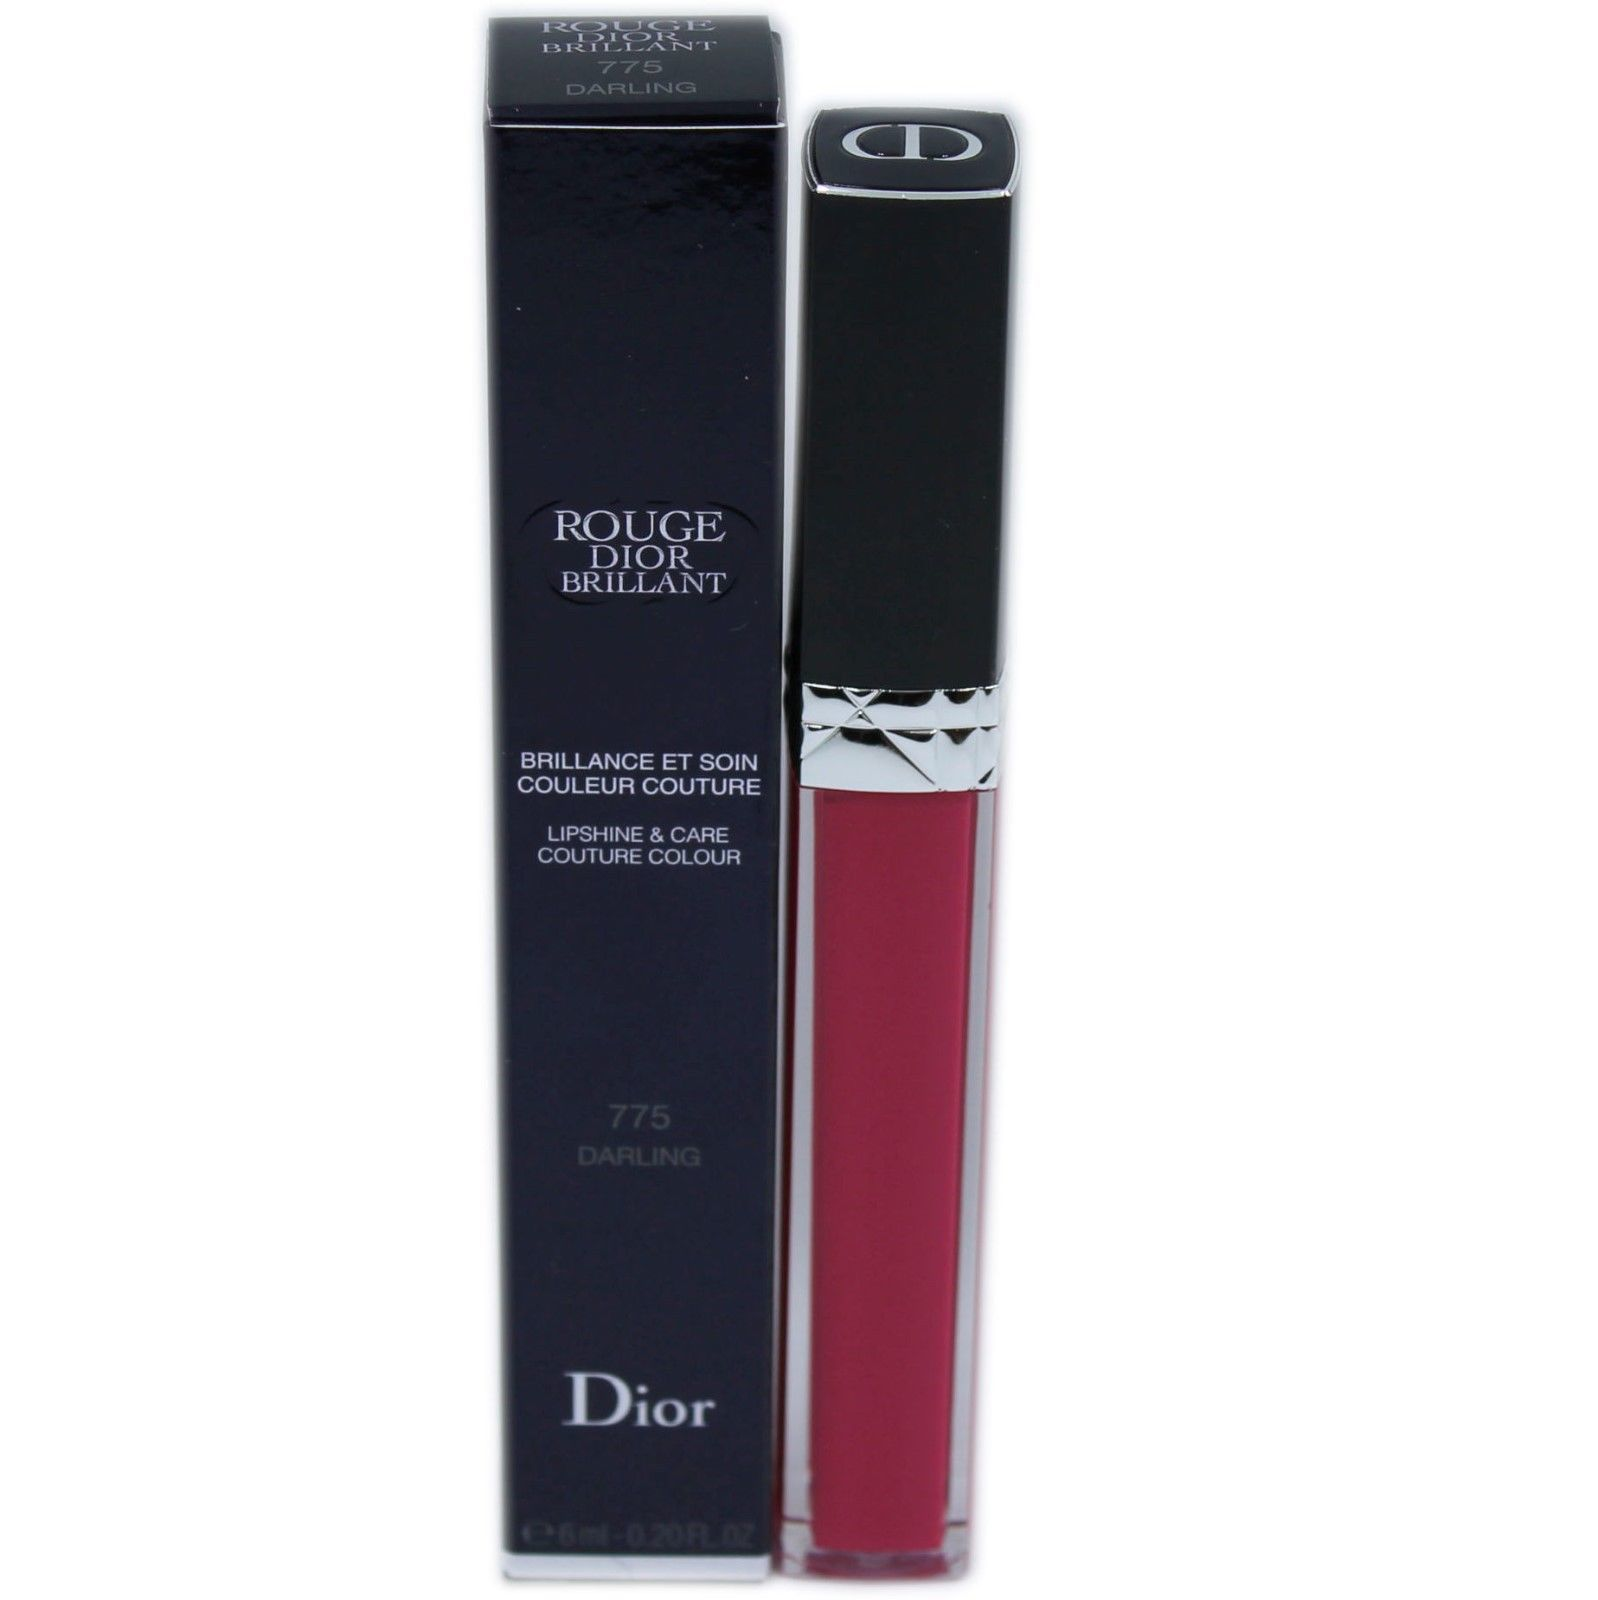 Primary image for ROUGE DIOR BRILLANT LIPSHINE & CARE COUTURE COLOUR 6ML #775 DARLING NIB